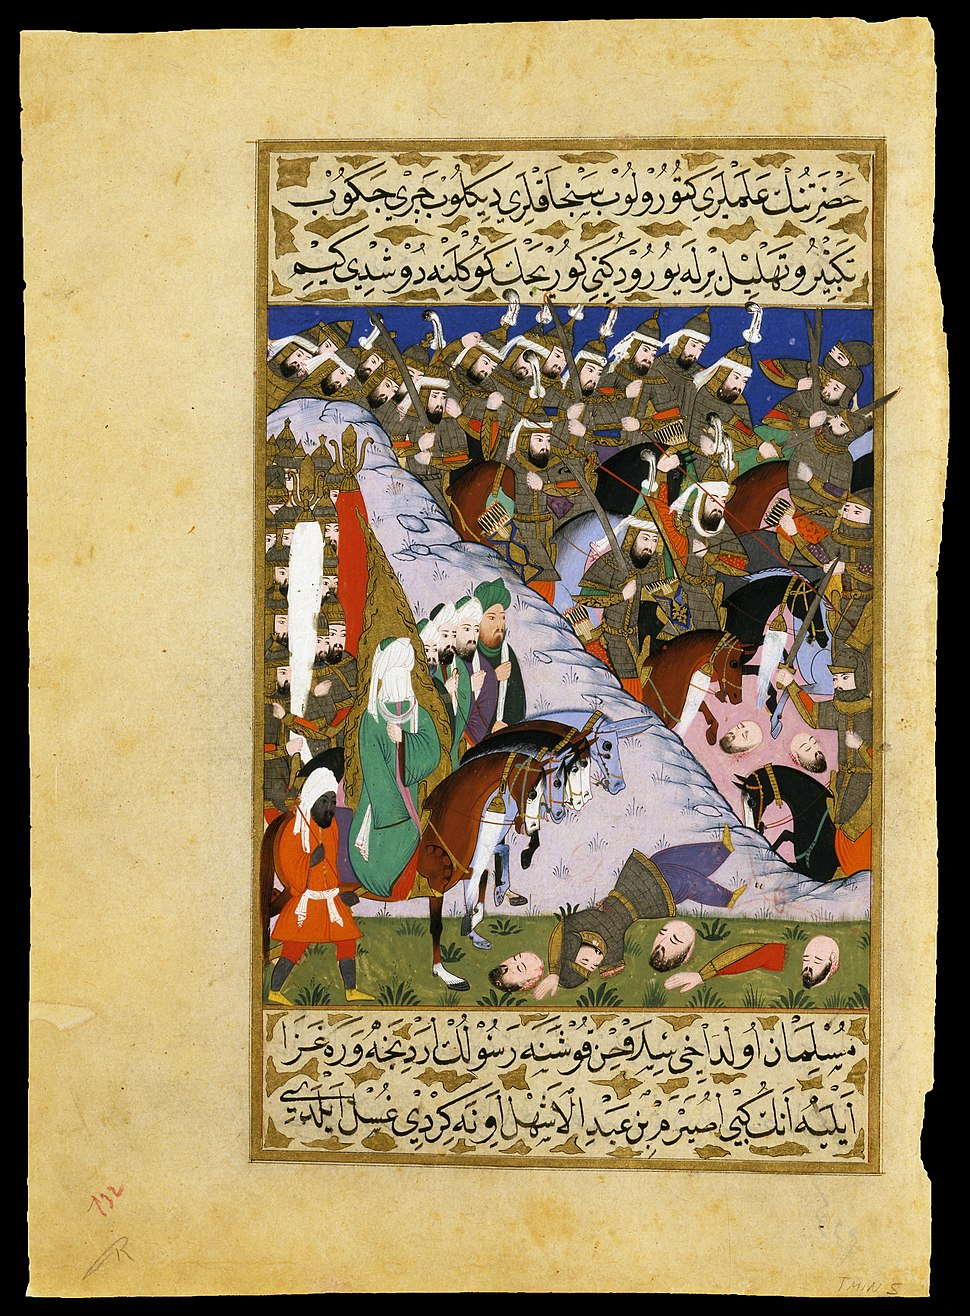 The Prophet Muhammad and the Muslim Army at the Battle of Uhud